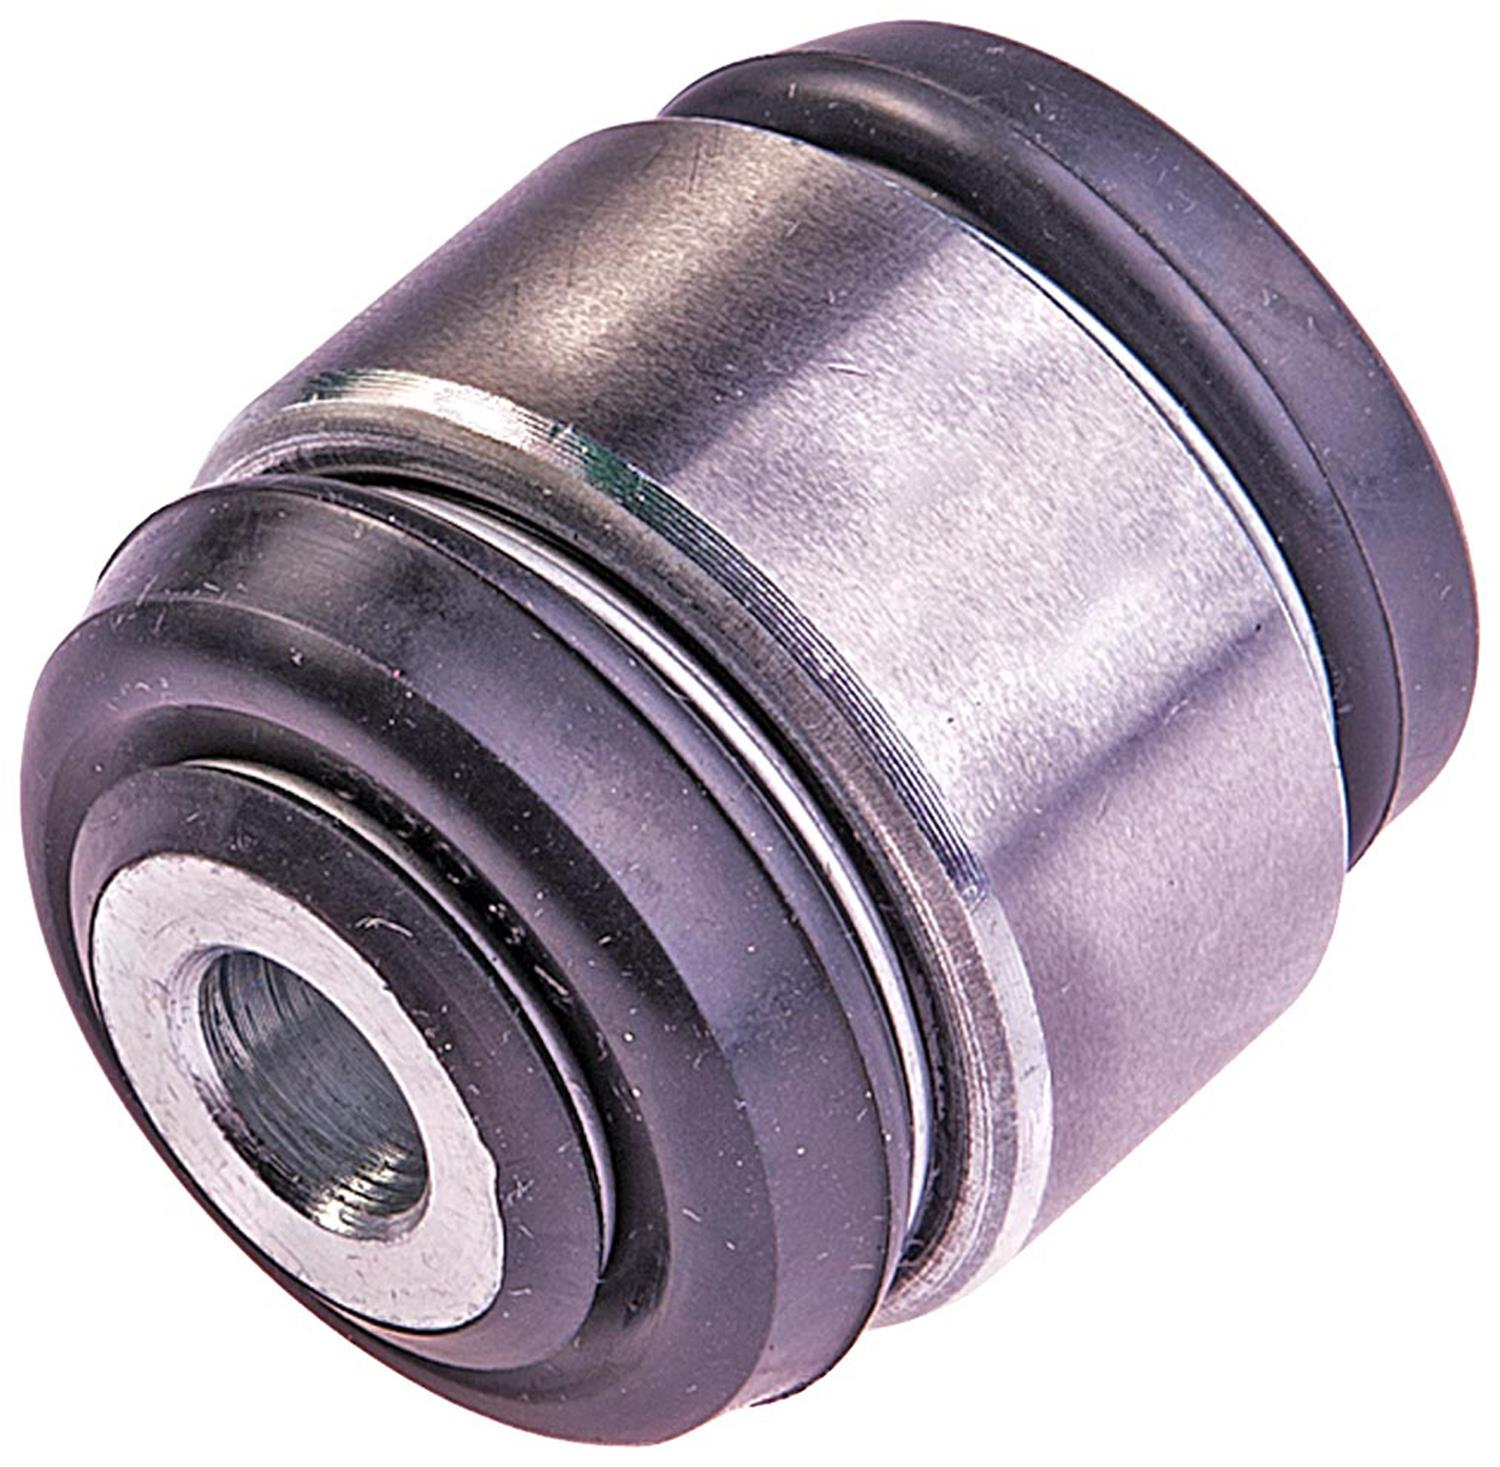 Dorman 905-505 Knuckle Bushing